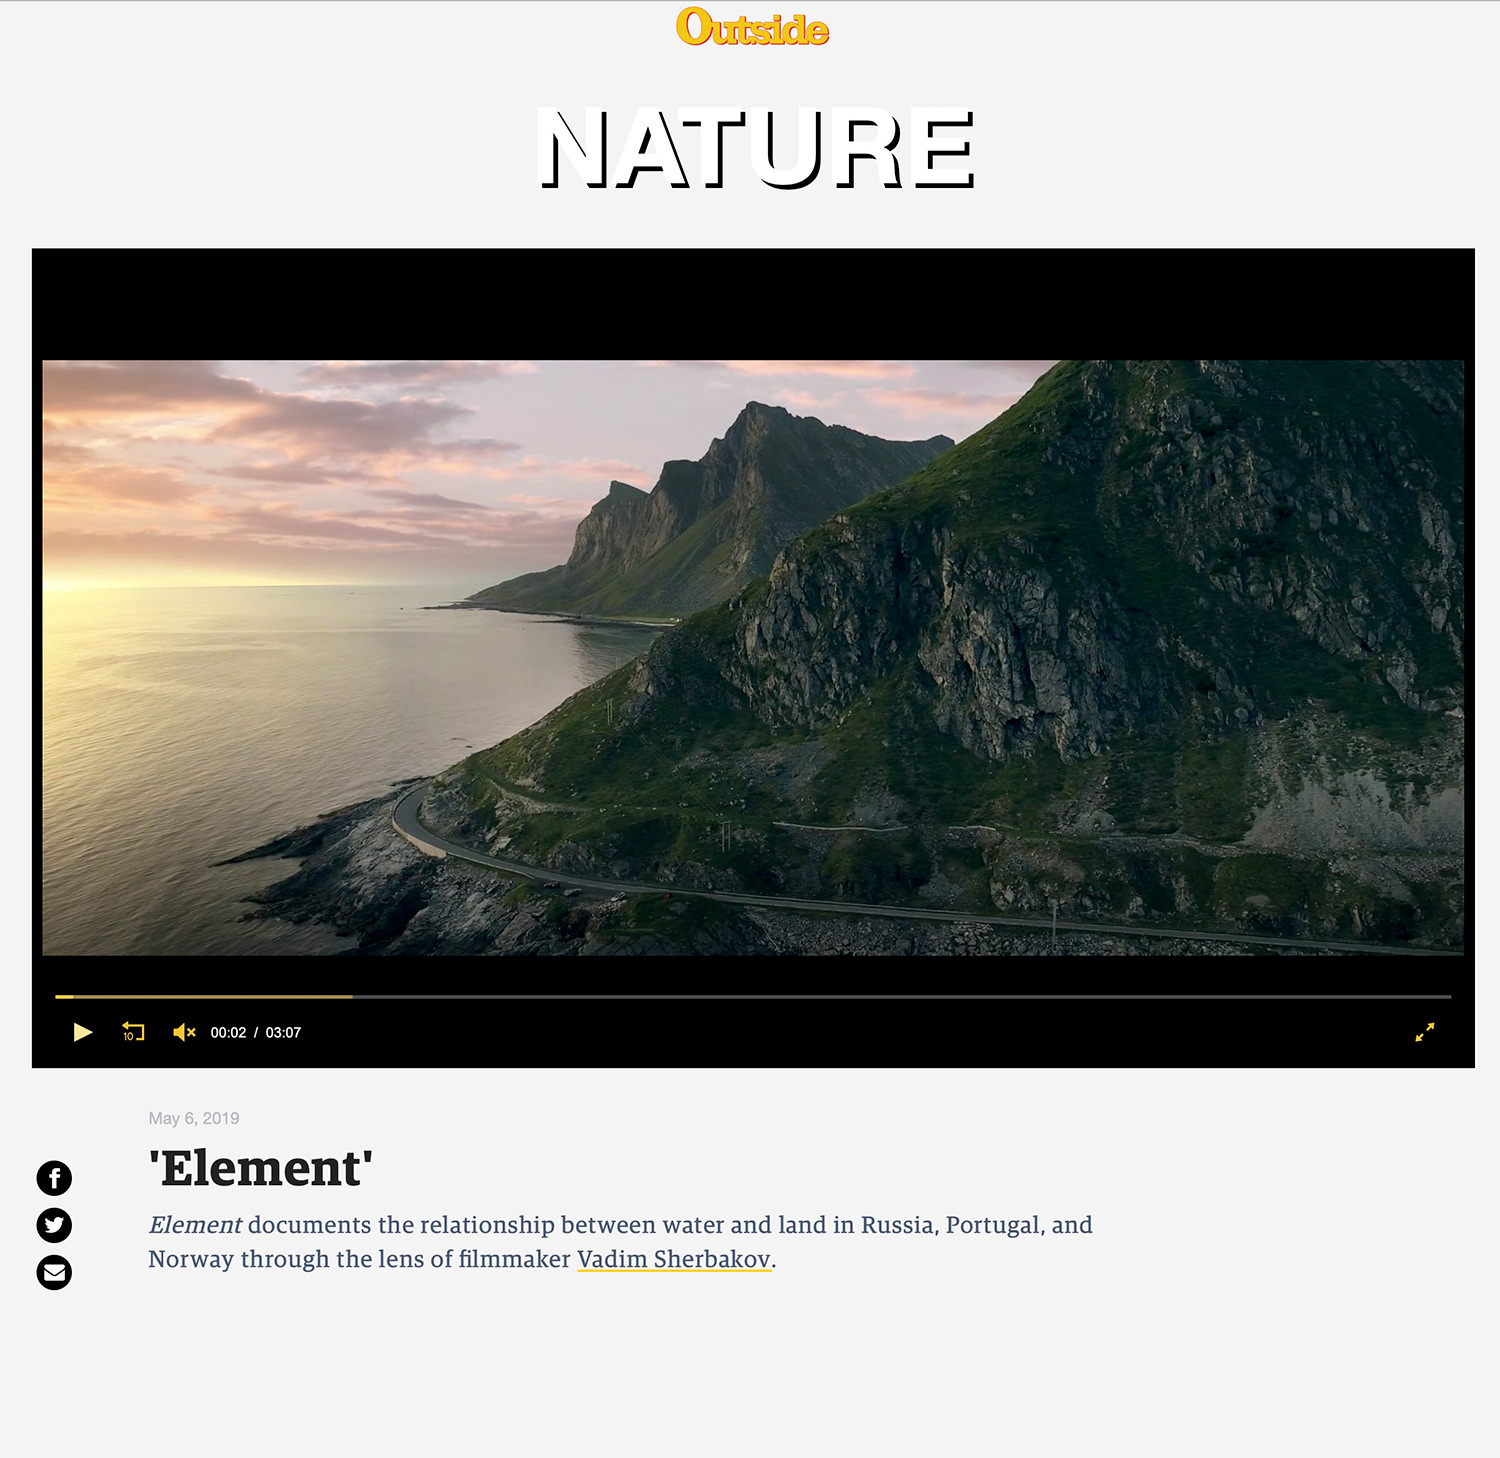 The Element short drone film on Outside Magazine site